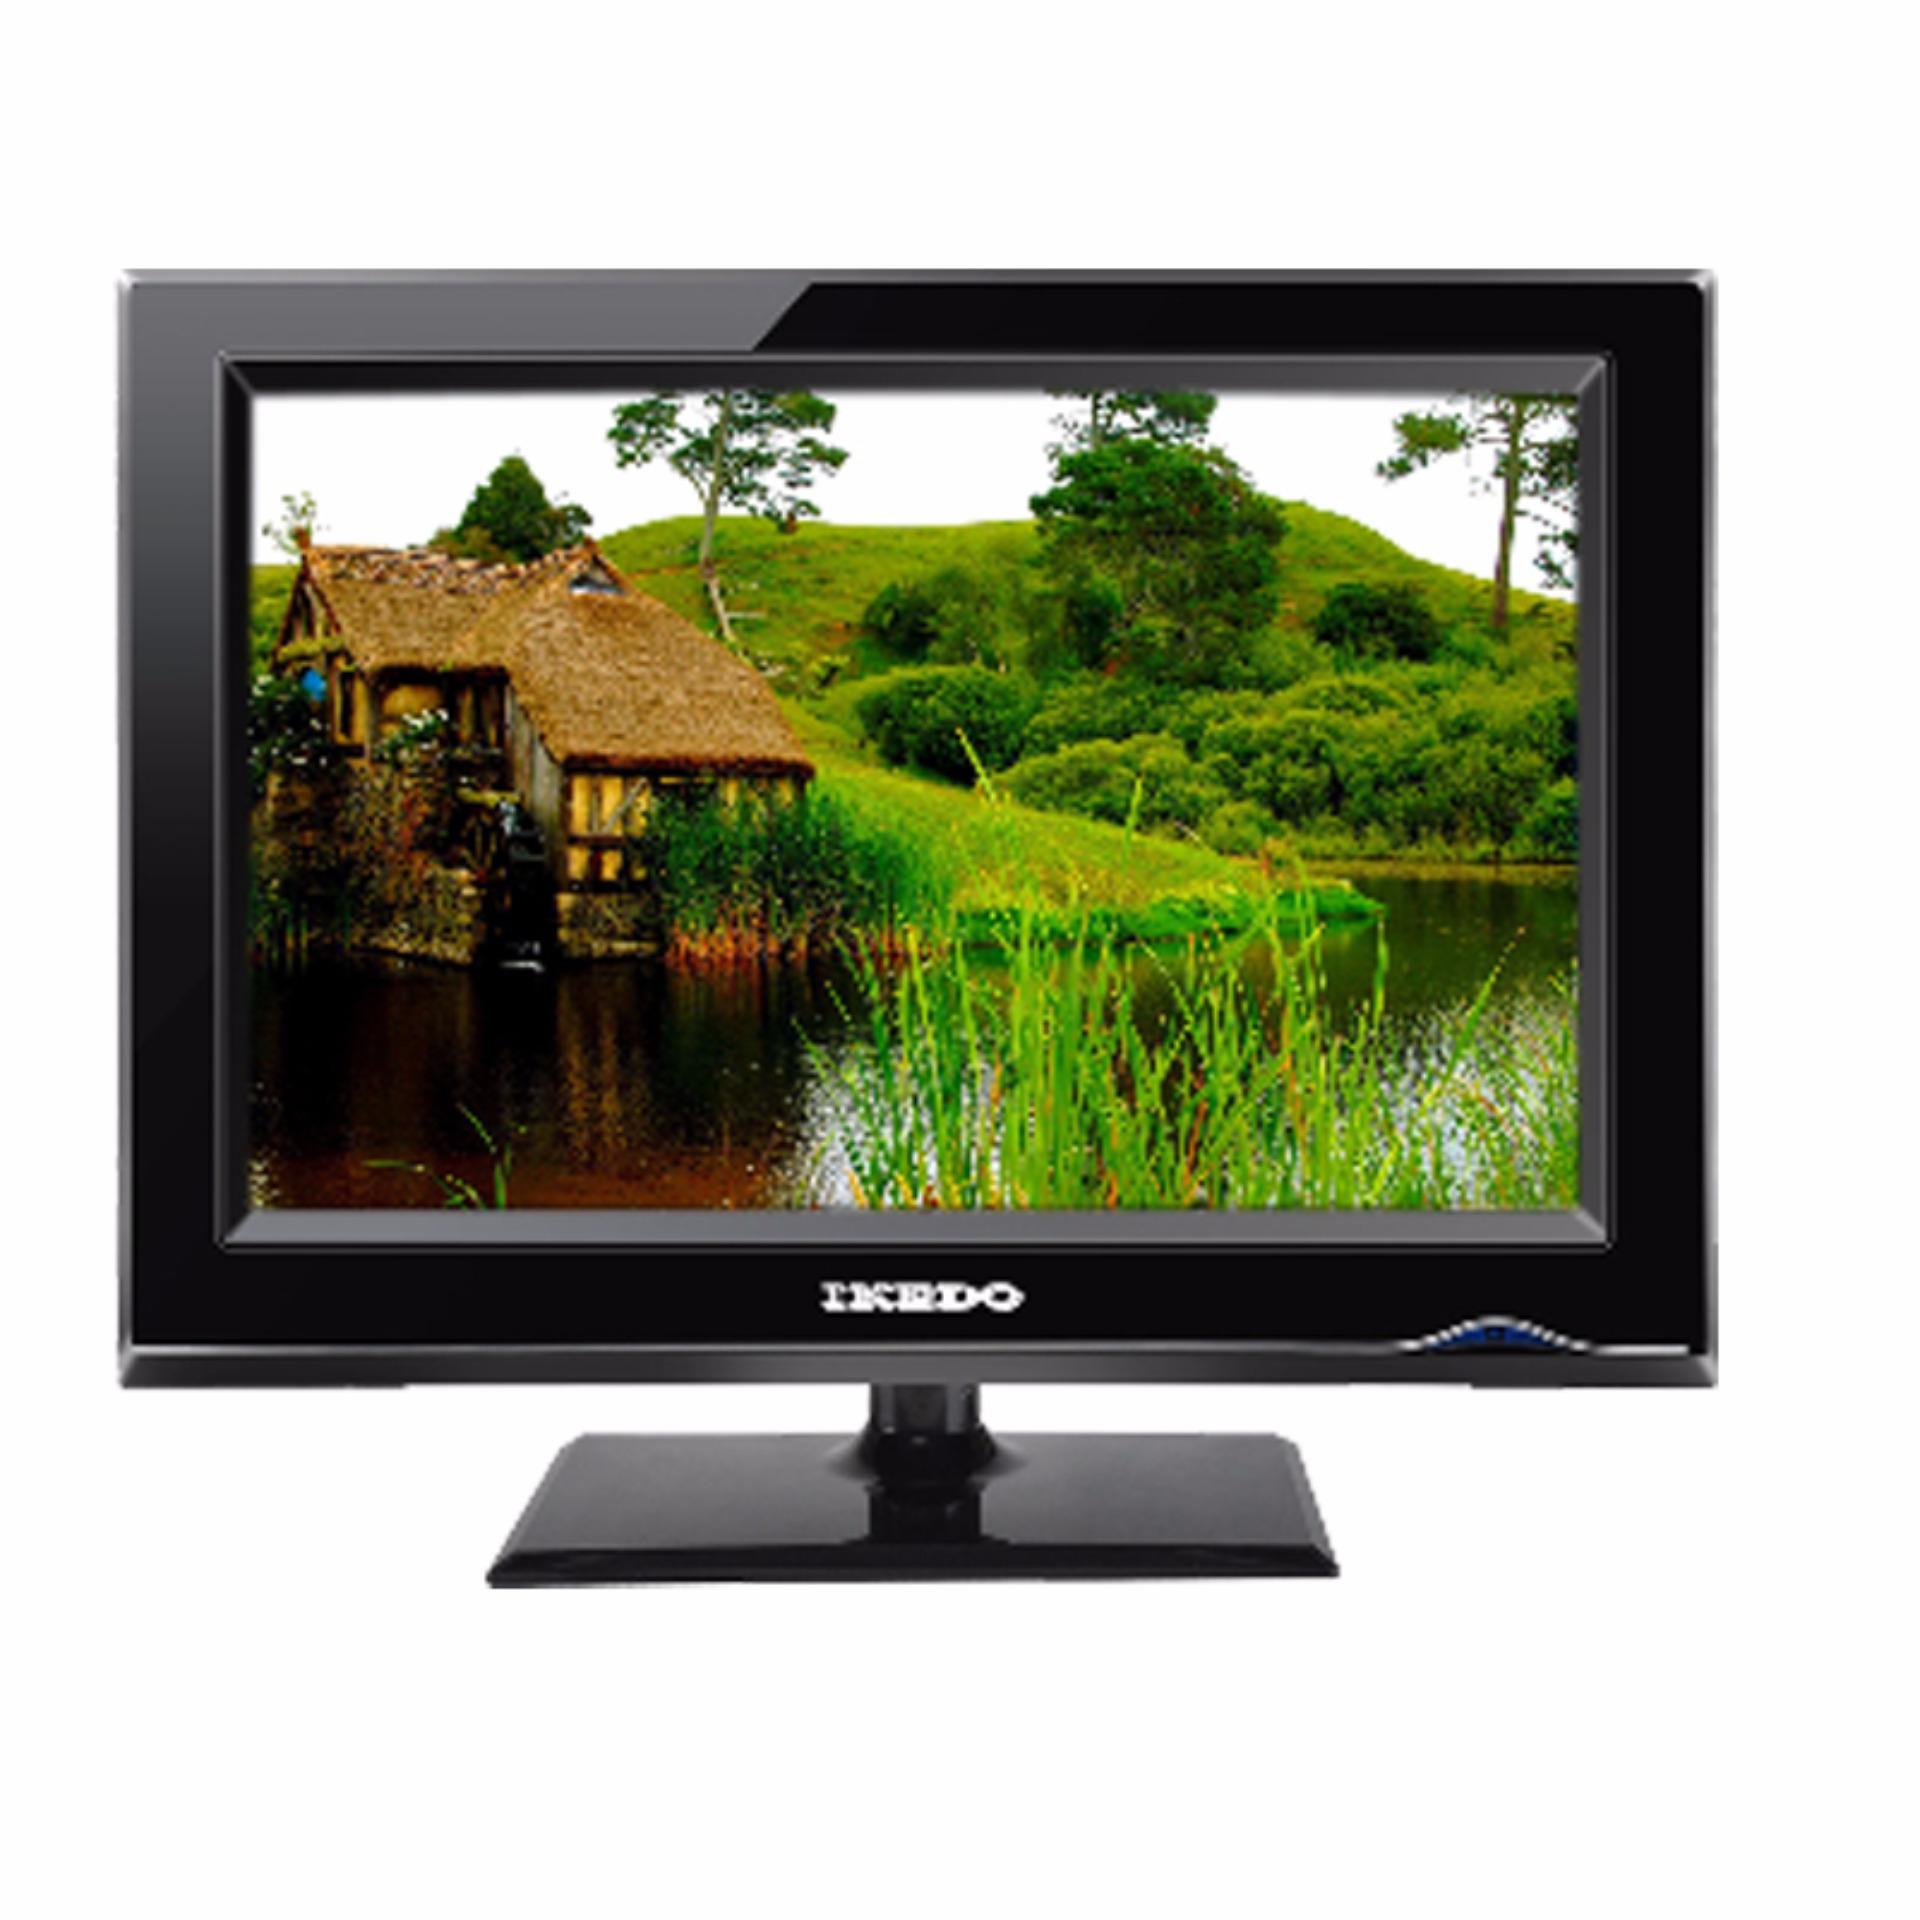 Digimedia Tvmonitor 95 Inch Led With Photo Frame Hitam Referensi Ikedo Tv Monitor 20 Lt 20h1u